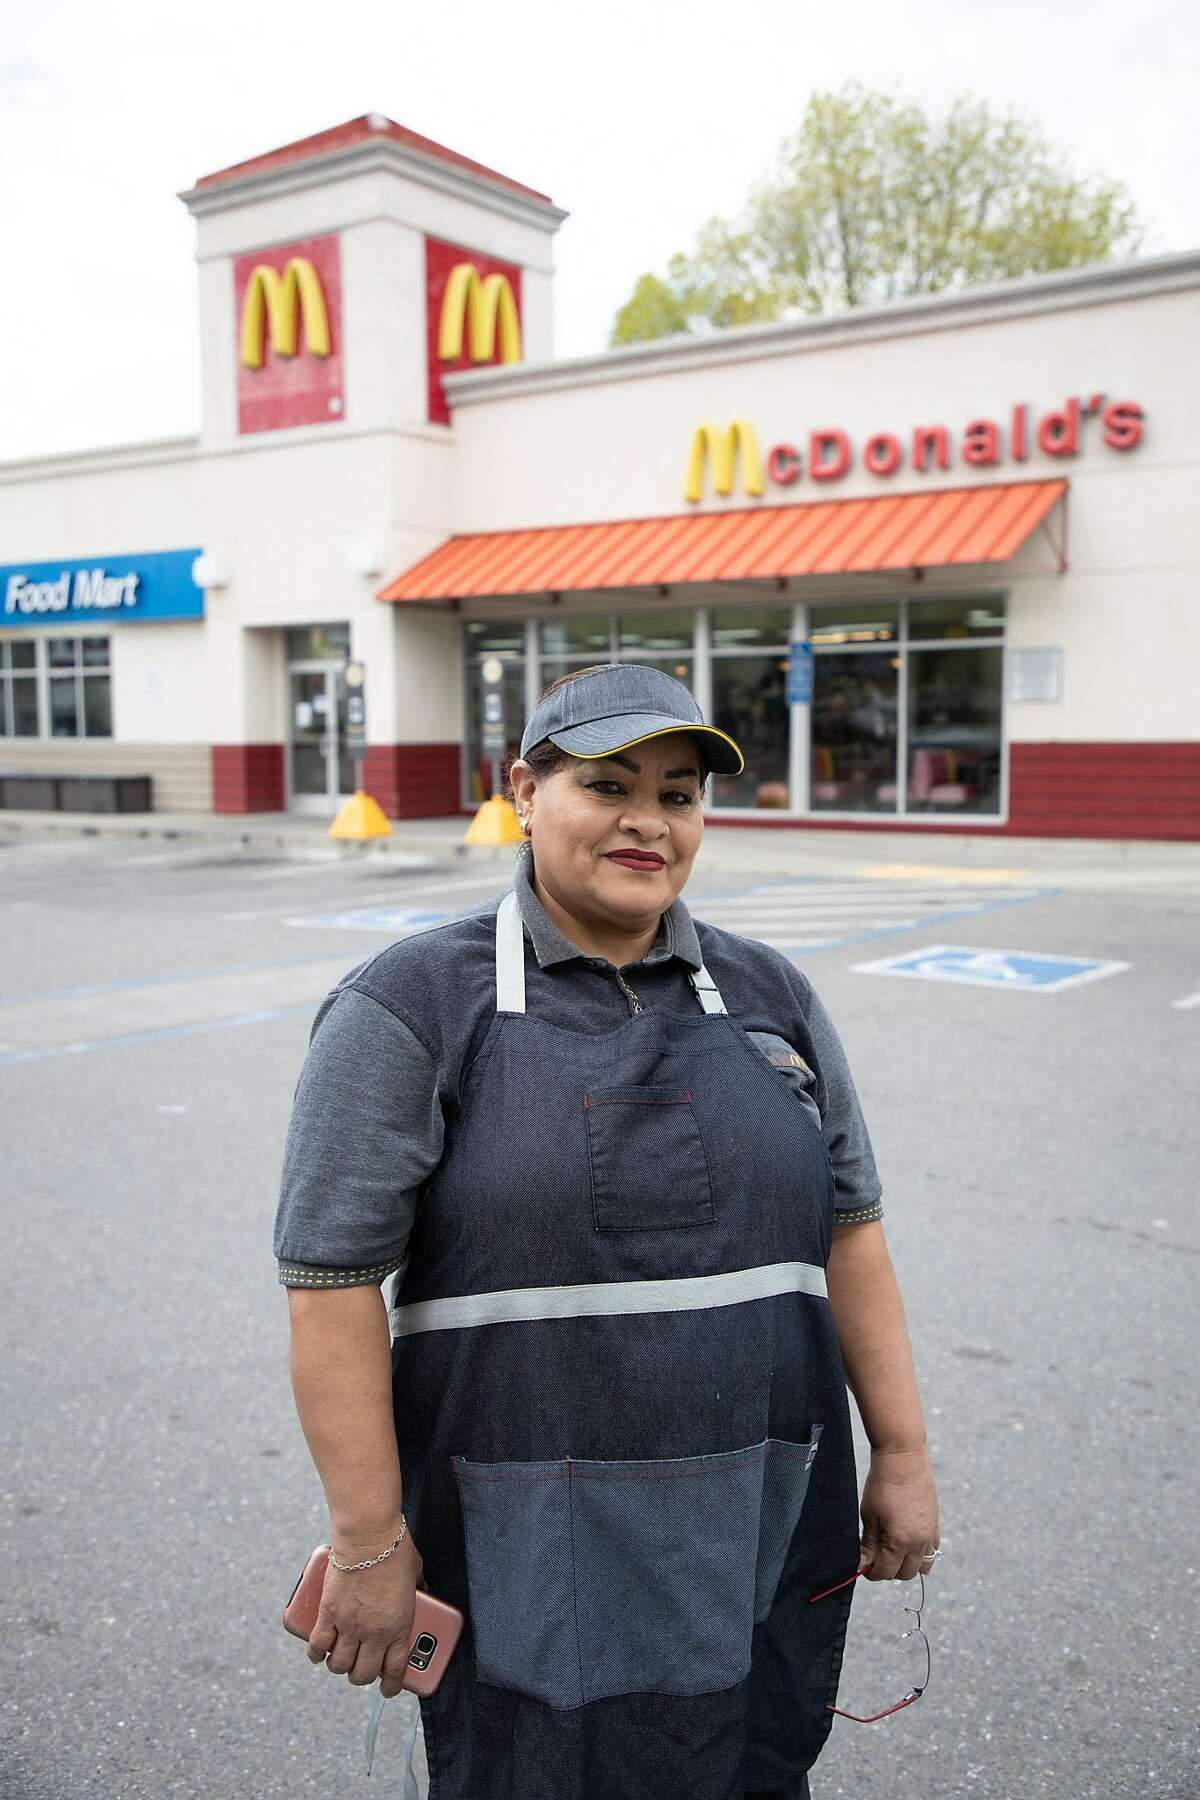 Ana Martinez poses for a portrait during a work break at McDonald's Friday, March 20, 2020, in Milpitas, Calif. She doesn't get health insurance through McDonald's. She has some insurance from her husband's job at Kellogg's cereal, but worries it is not enough and the out of pocket costs are high.